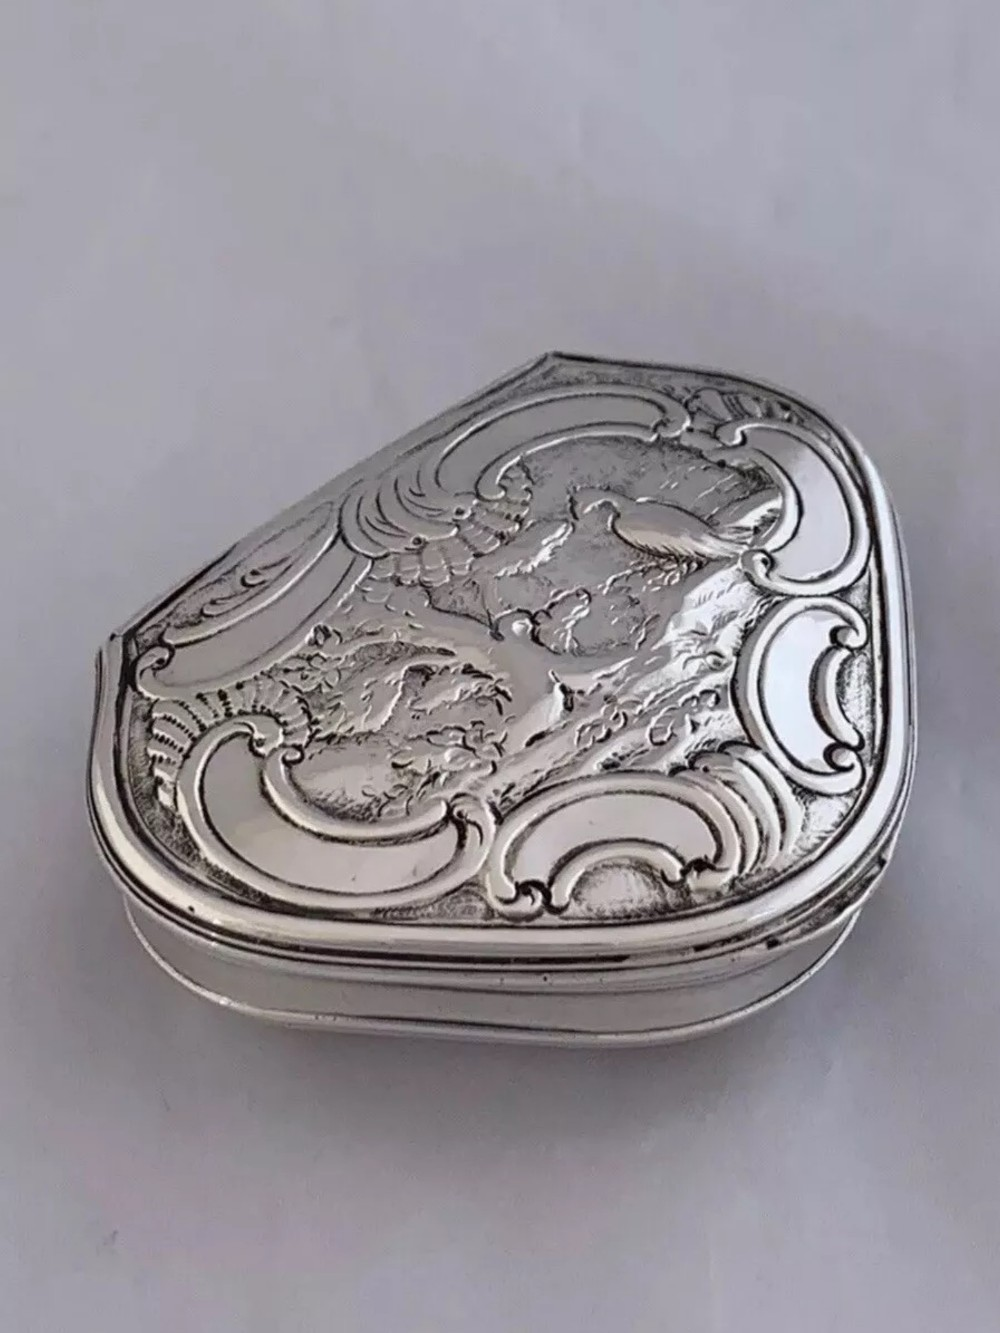 antique silver george ii cartouche shape box 1745 london robert collier